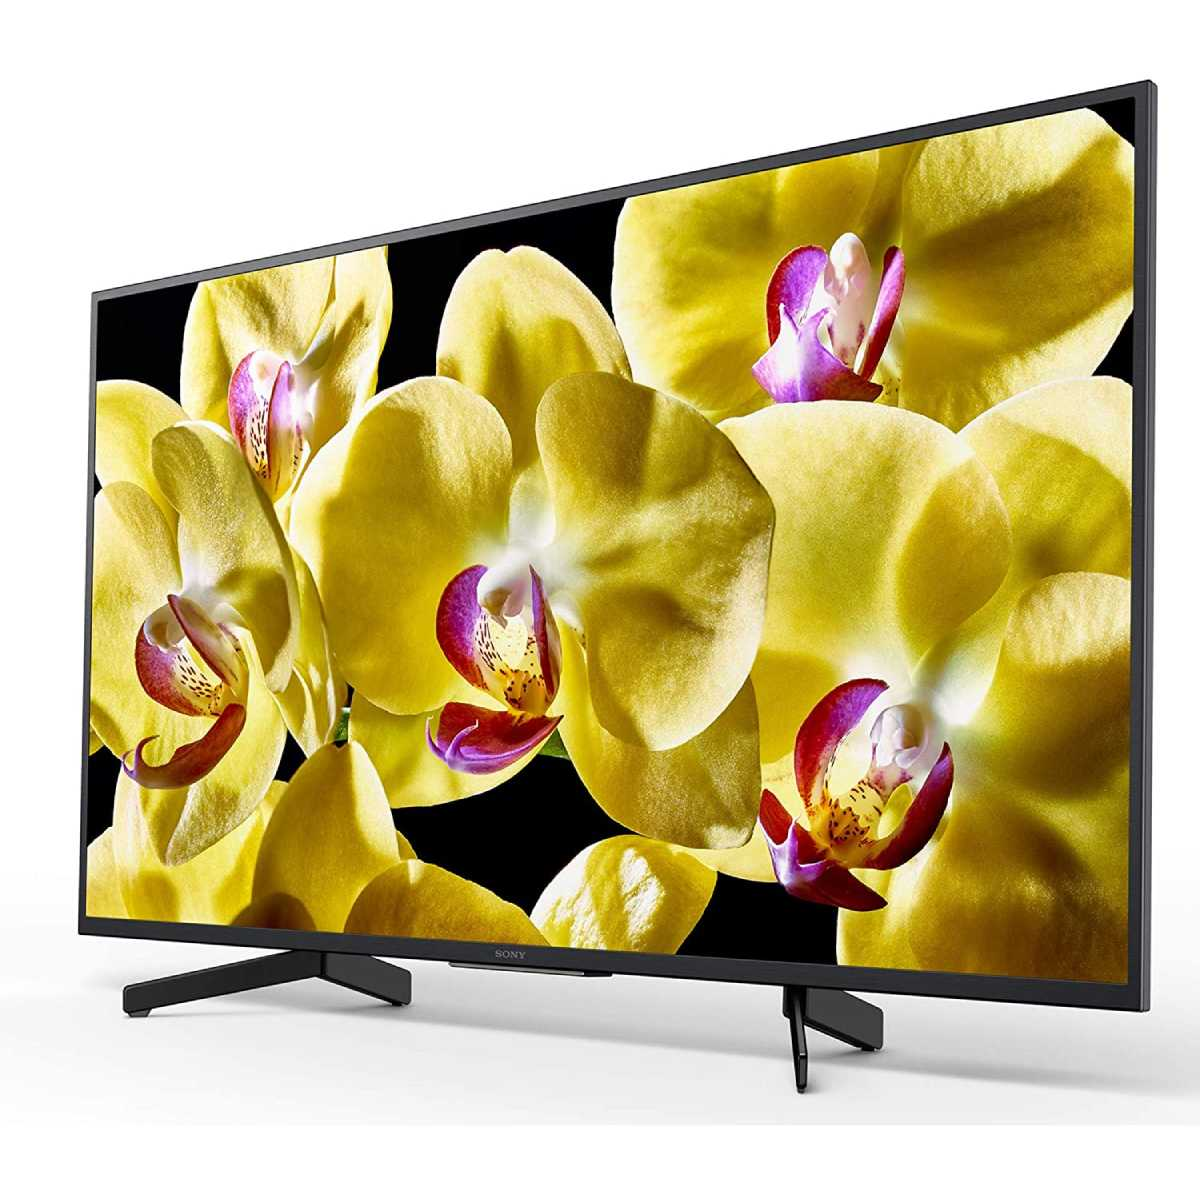 Sony Bravia 43 Inches 4k Uhd Kd 43x8000g Tv Price In India Specification Features Digit In